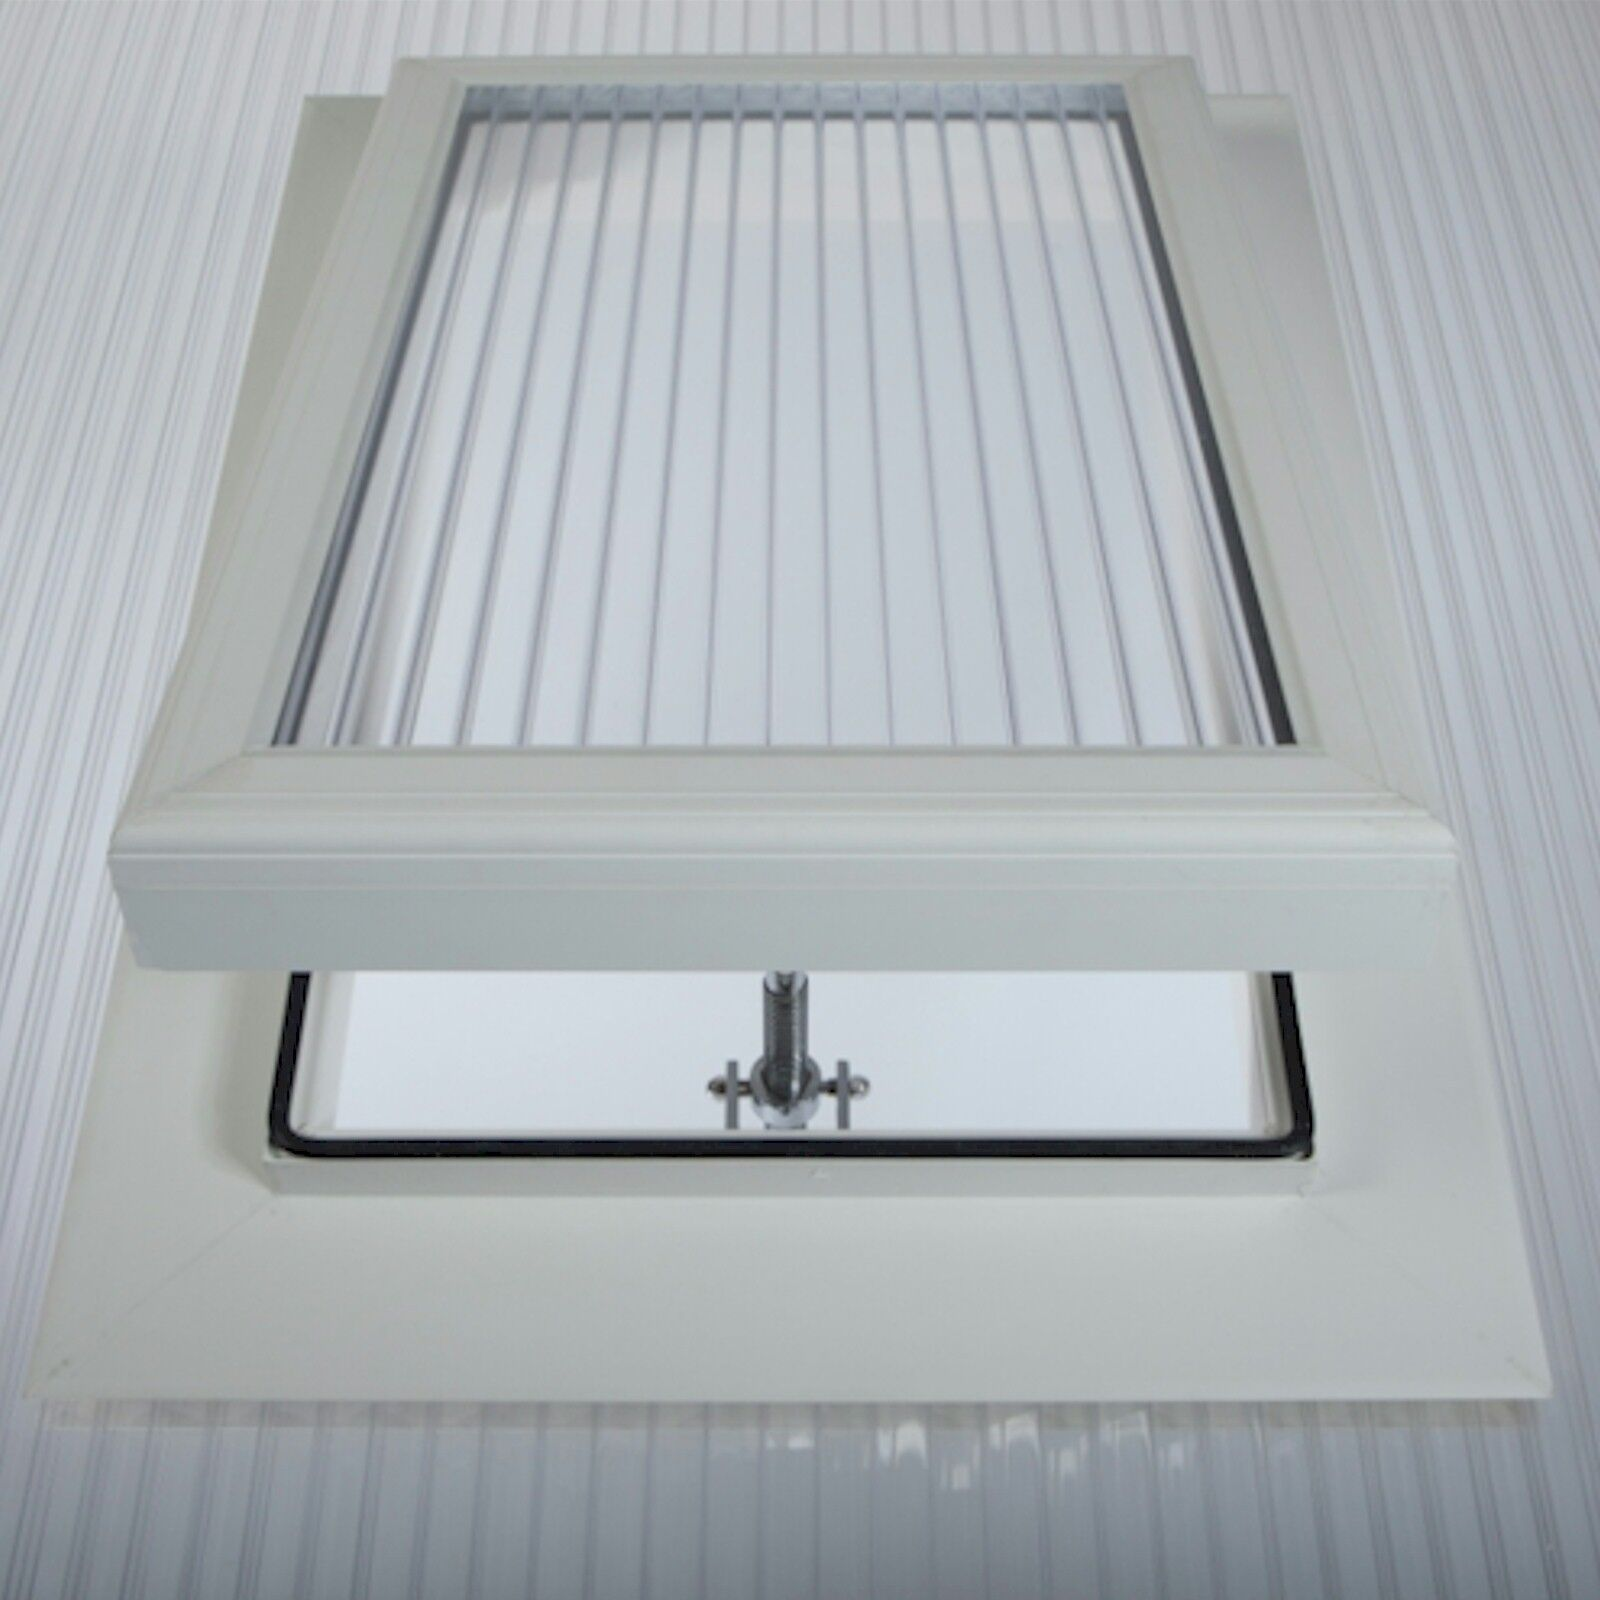 Polycarbonate Roof Vent Sky Light 16mm White